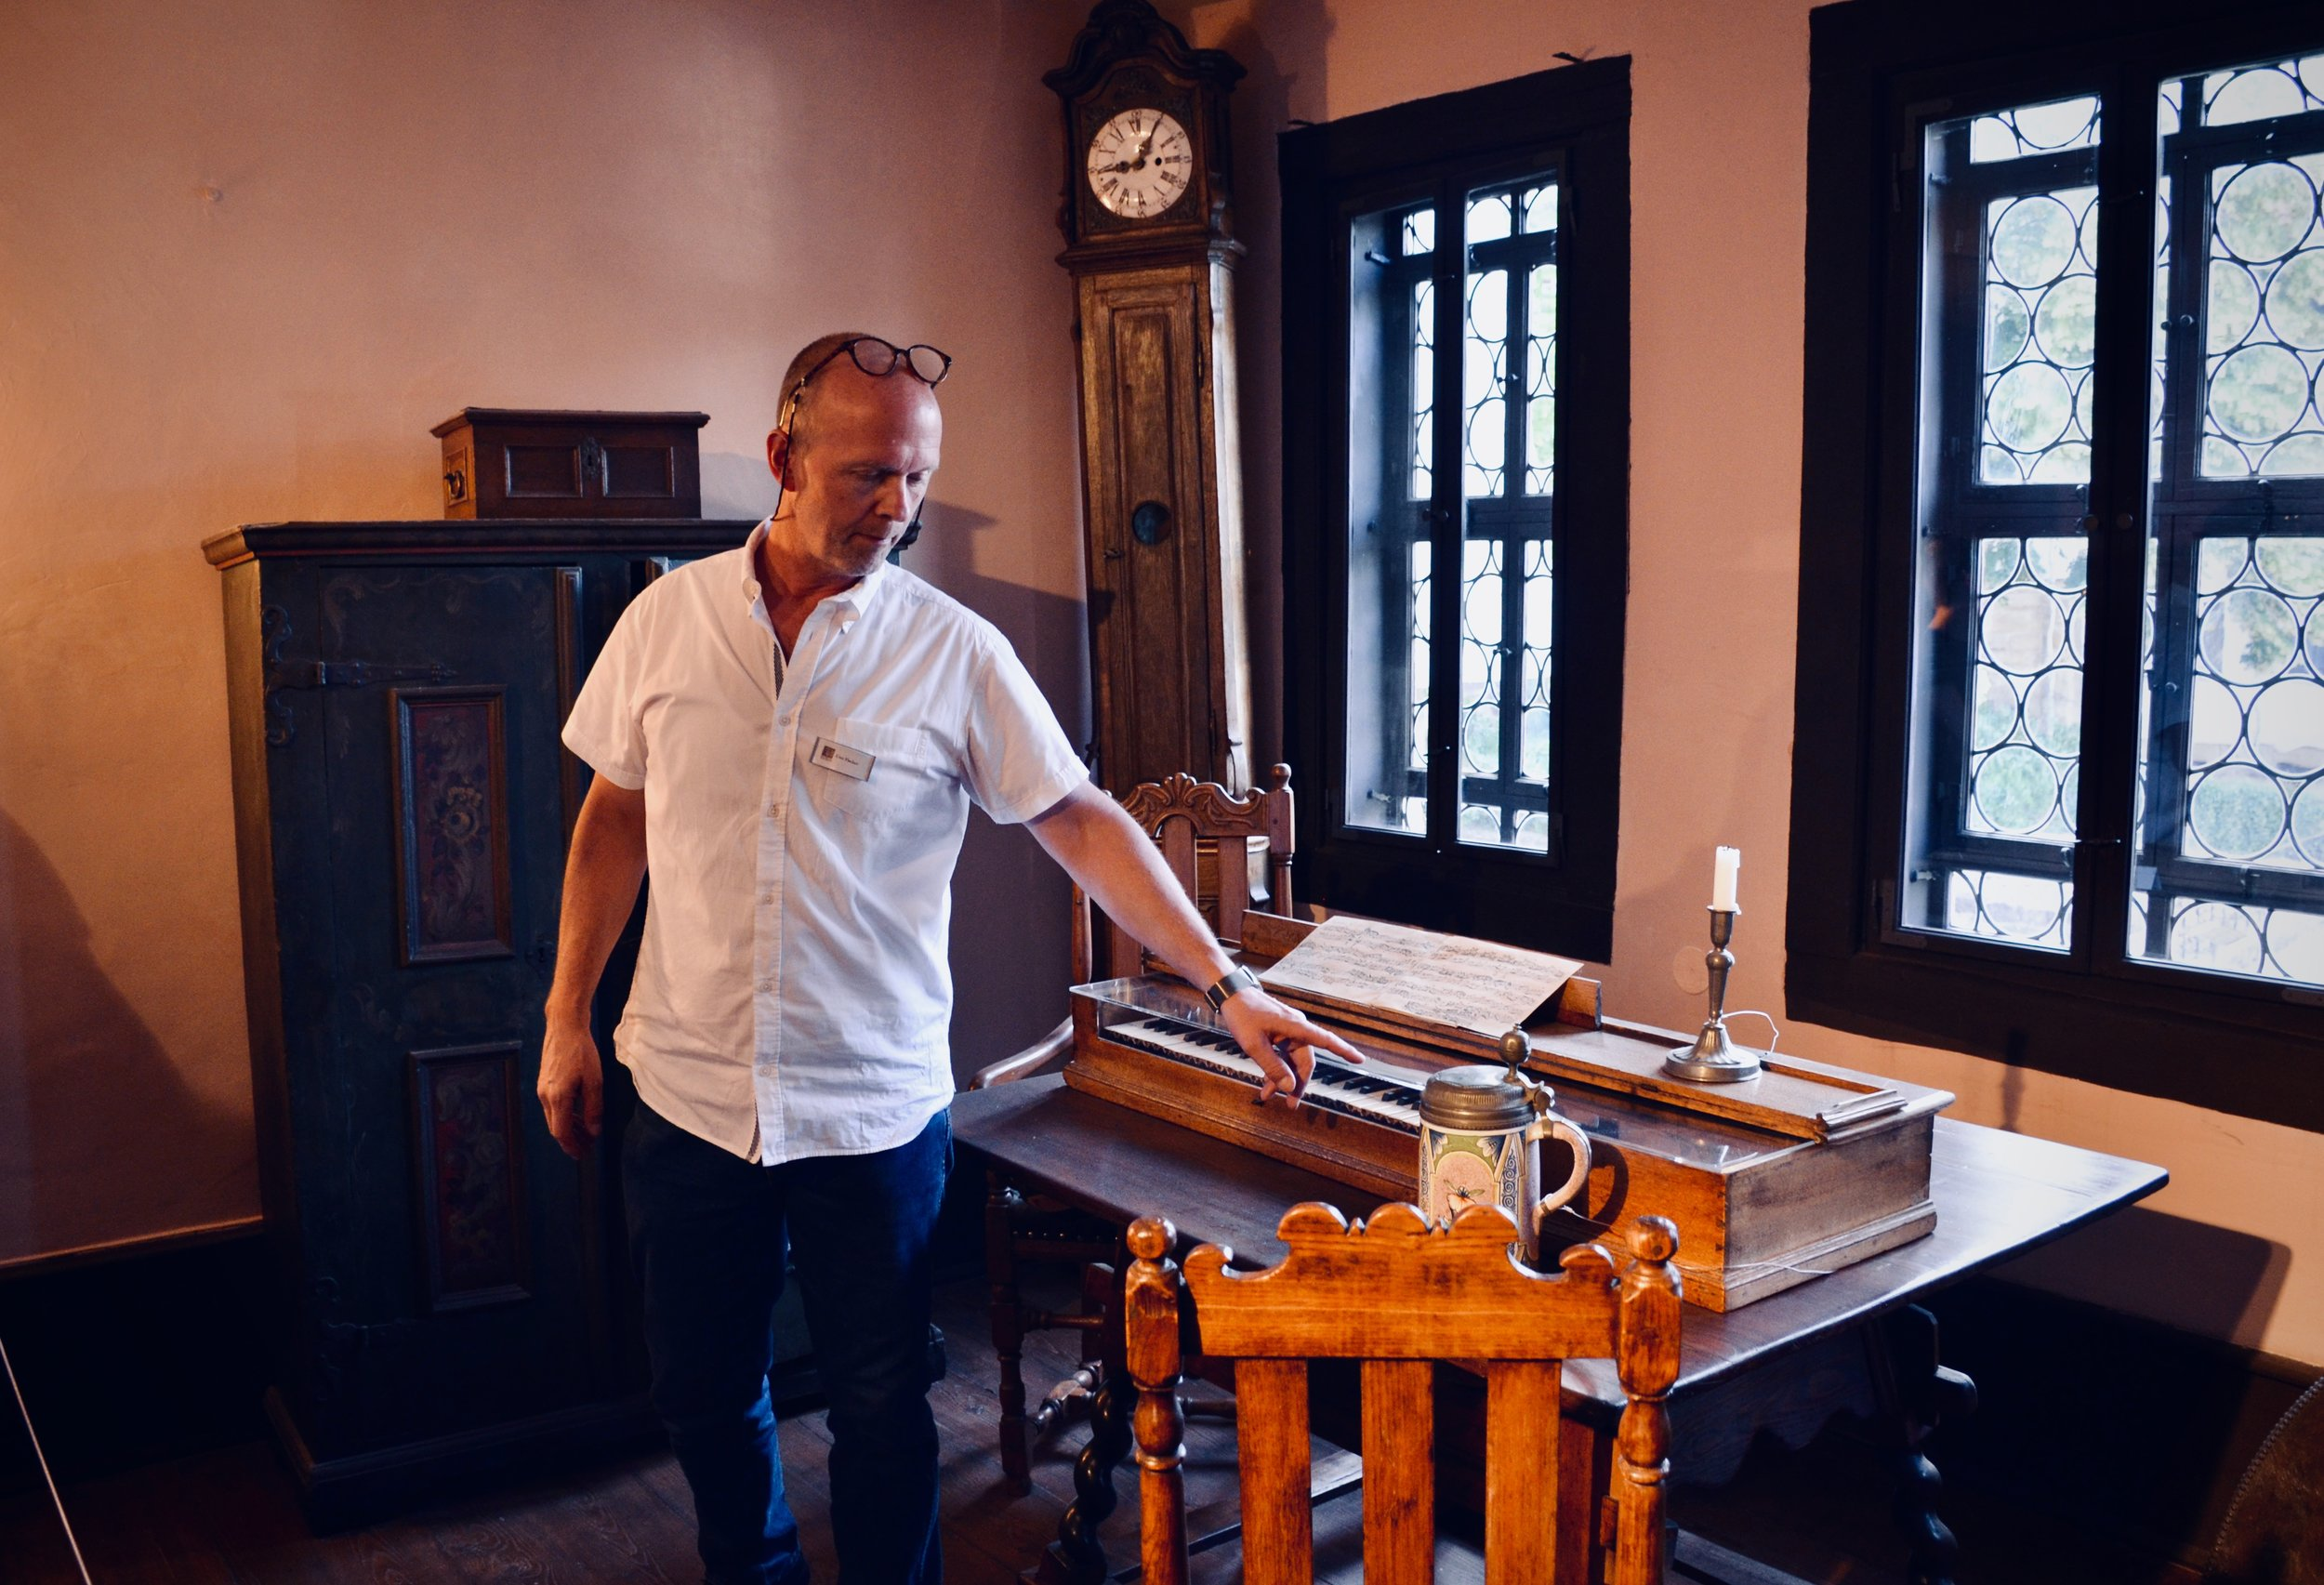 Curator Uwe Fischer shows a reconstruction of Bach's composing studio, with clavichord. The Bachhaus Museum, Eisenach.